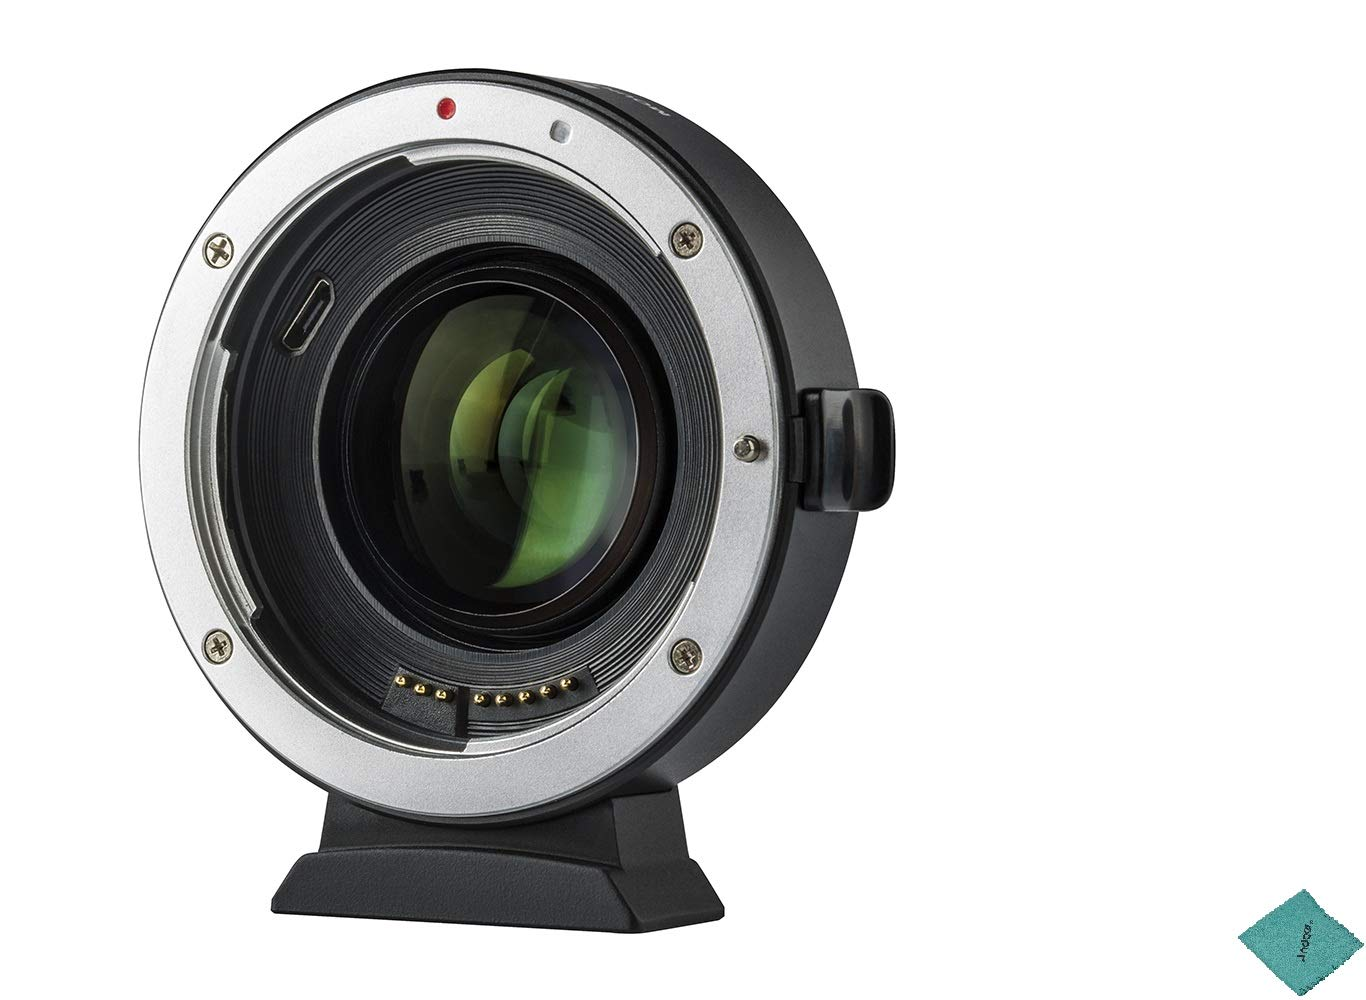 VILTROX EF-EOS M2 Auto Focus Lens Mount Adapter Ring 0.71X Focal Lenth Multiplier USB Upgrade for Canon EF Series Lens to EOS EF-M Mirrorless Camera for Canon EOS M/ M2/ M3/ M5/ M6/ M10/ M50/ M100 by VILTROX (Image #1)